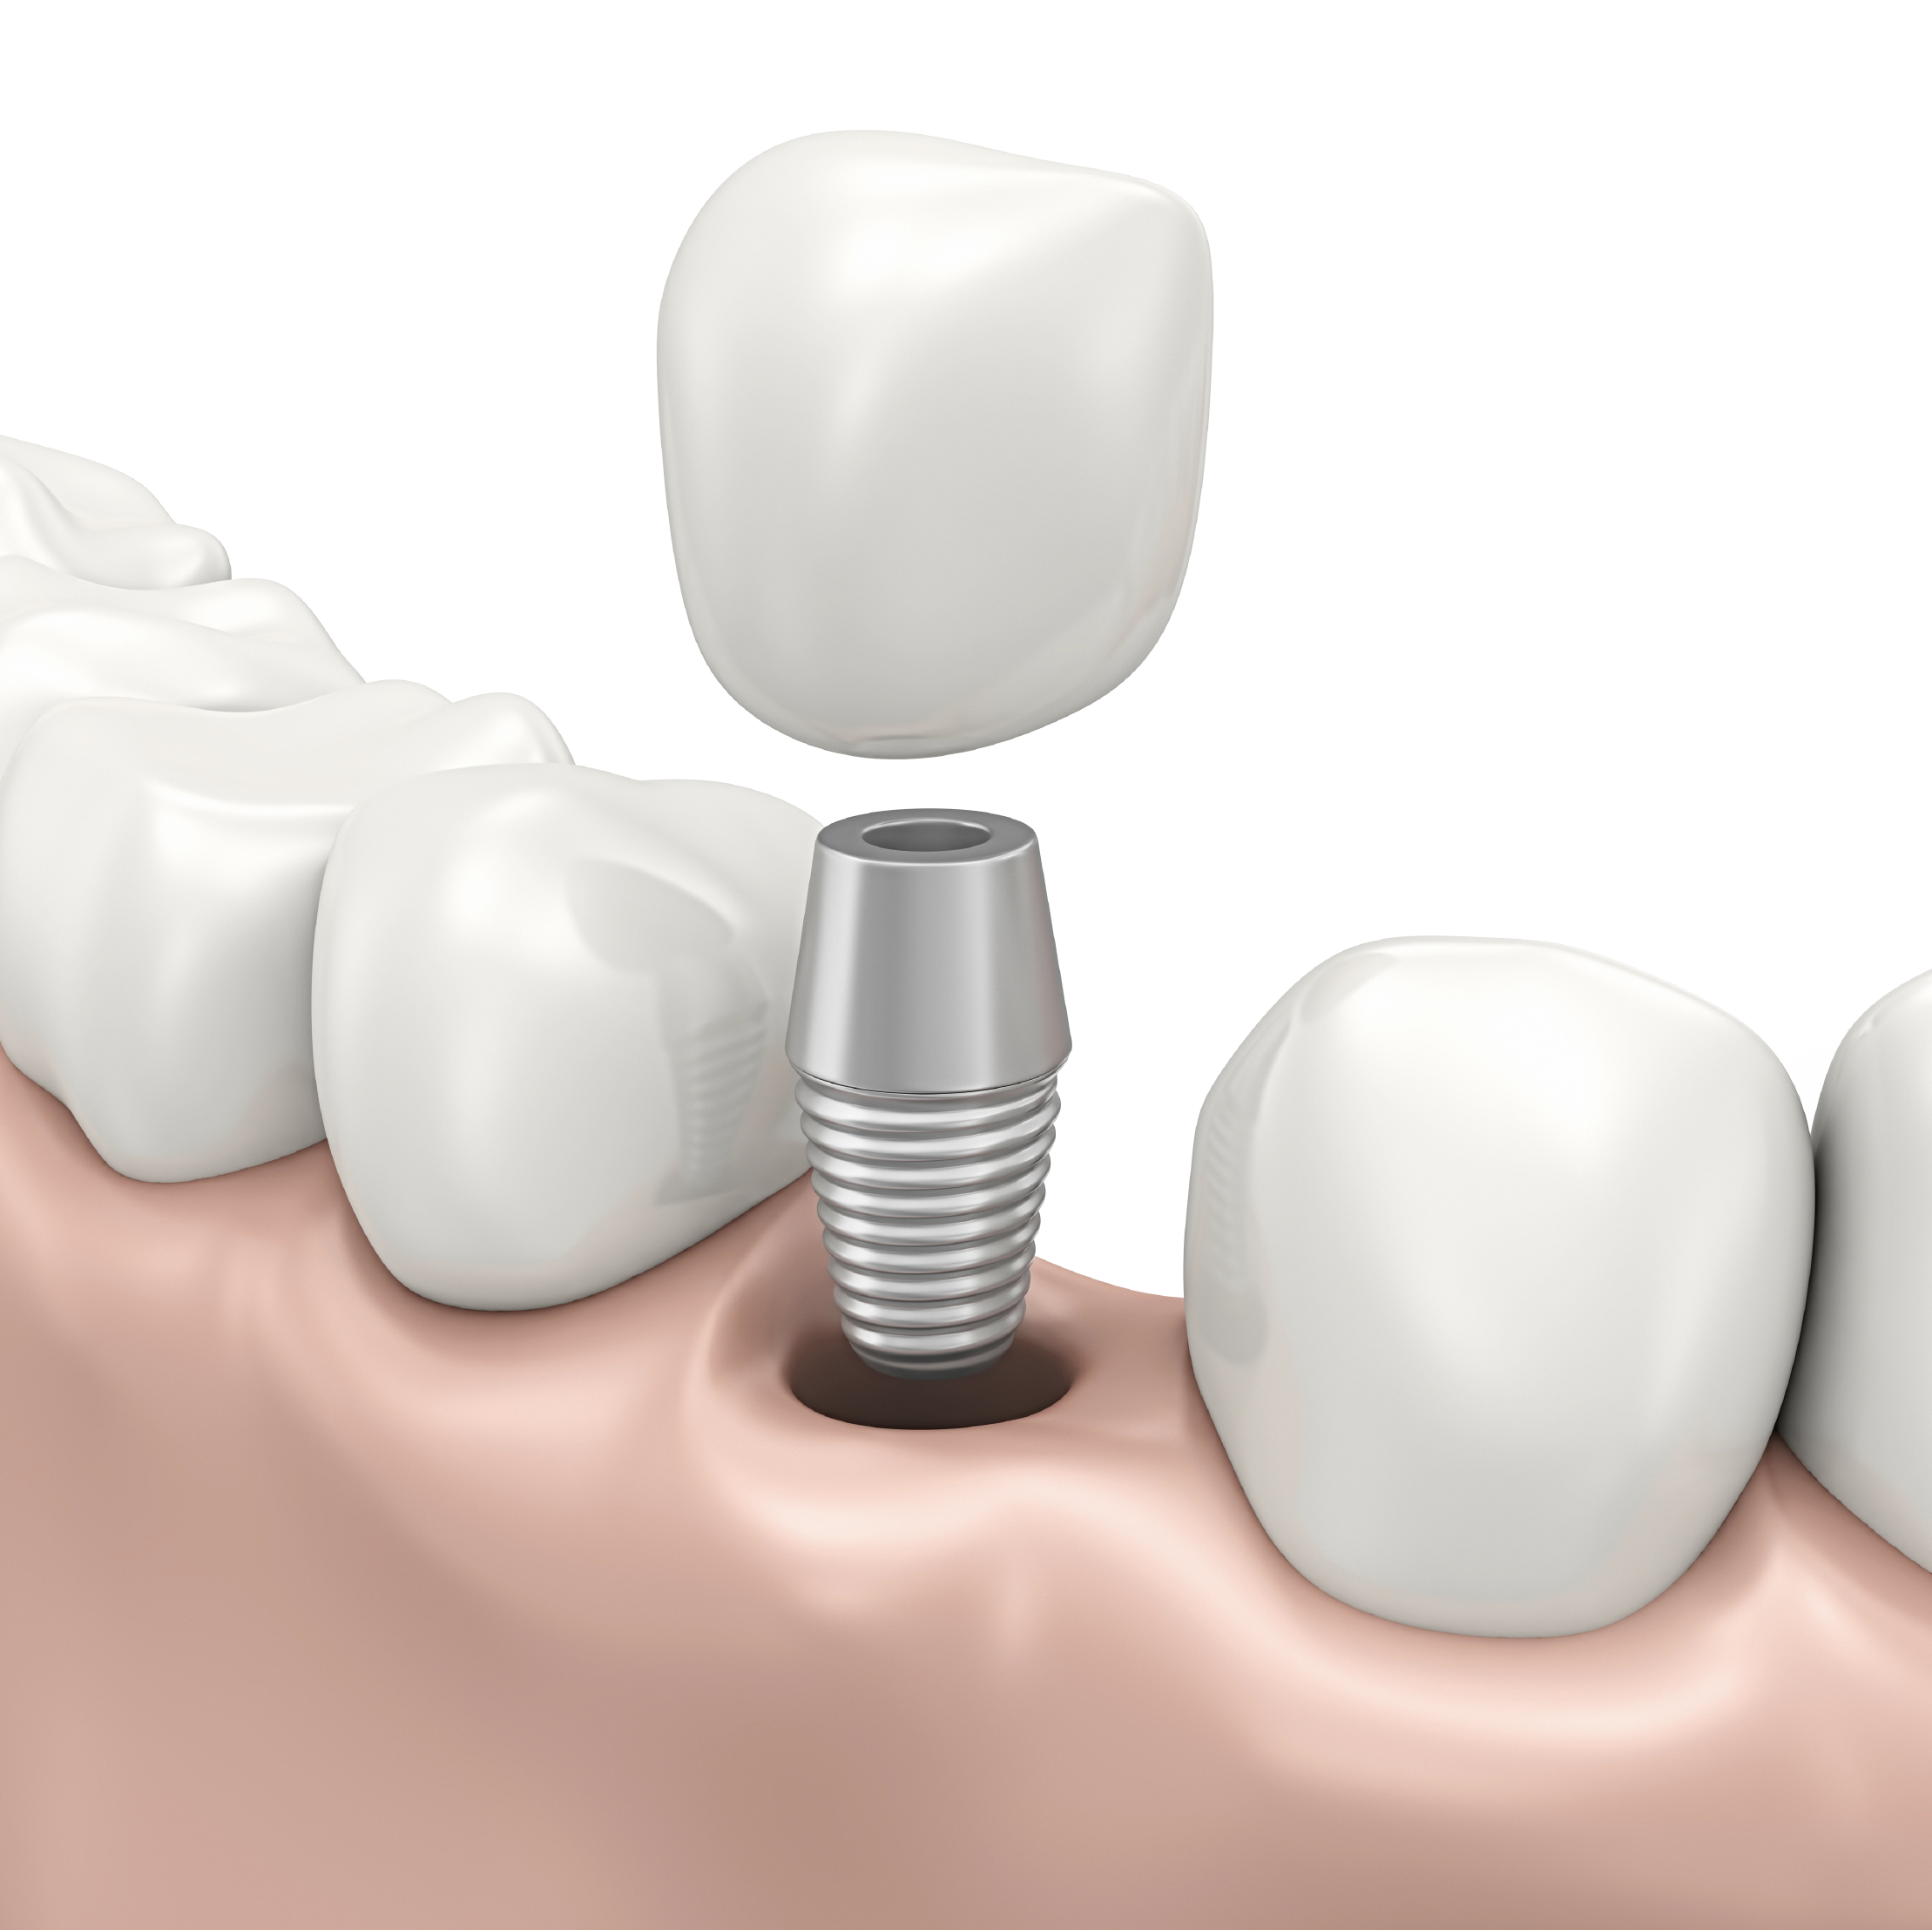 dental implants in Amarillo